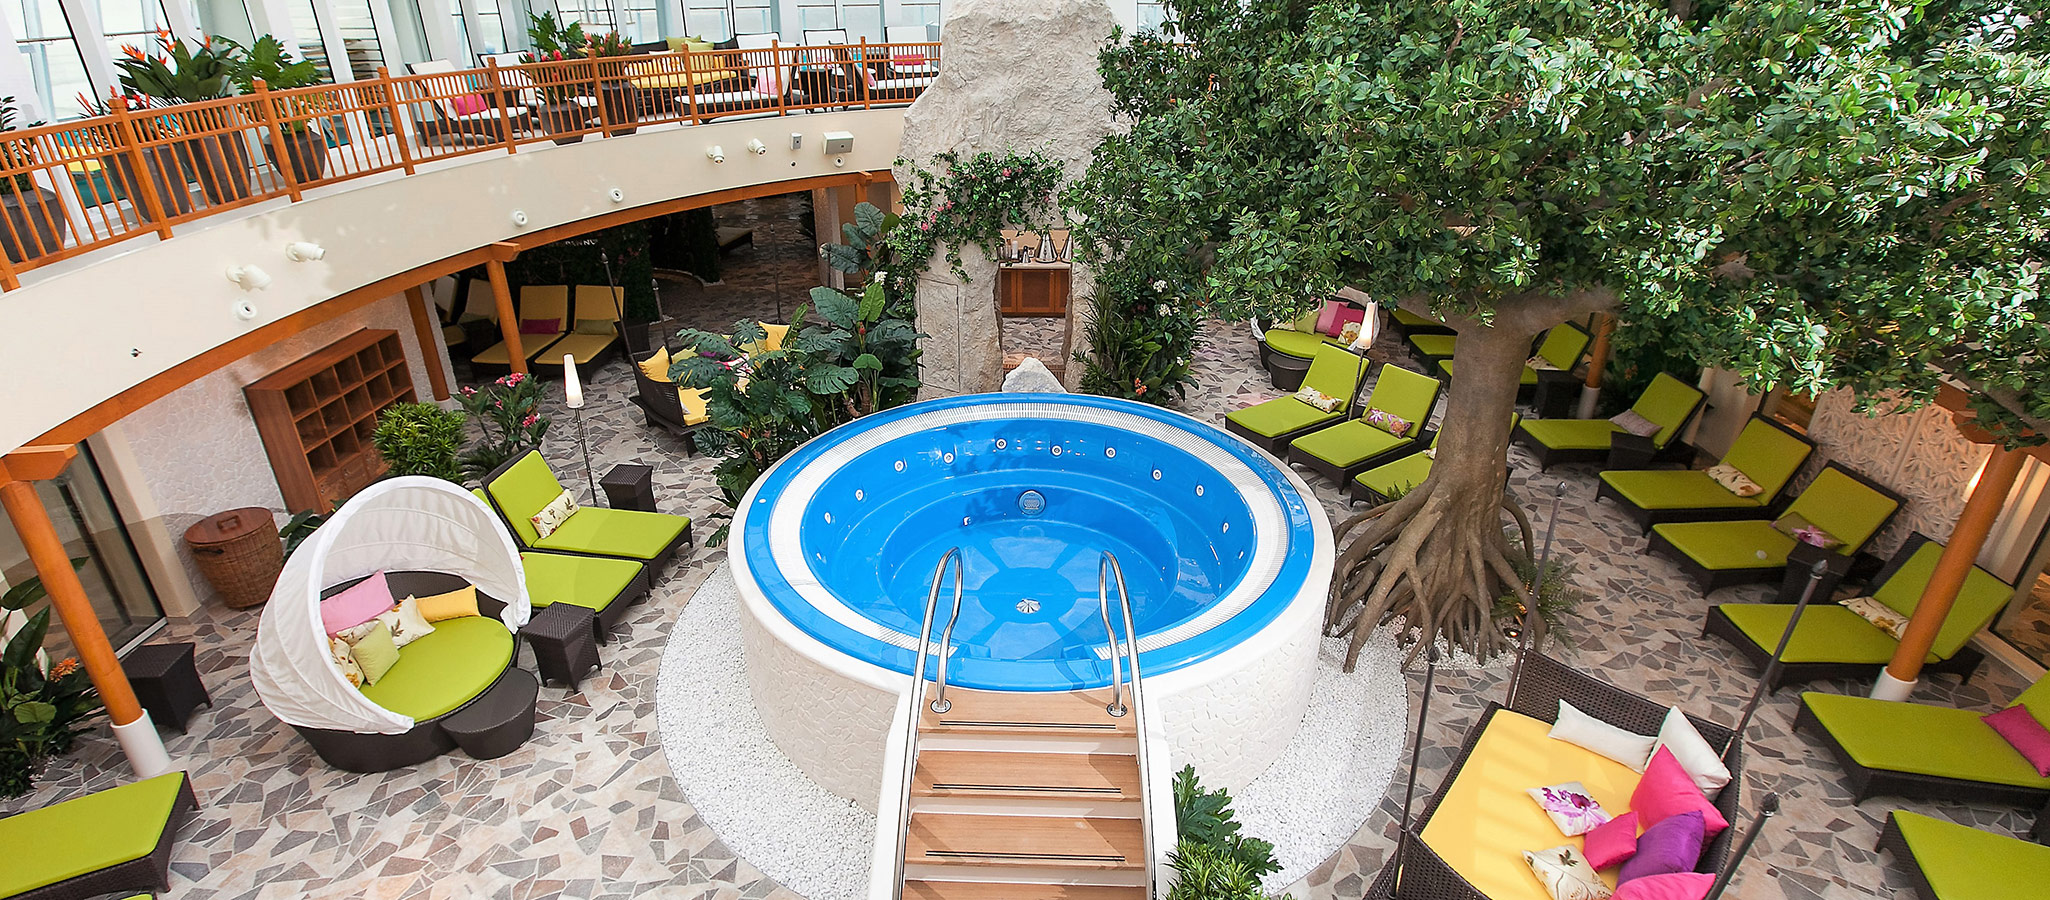 The spa areas of the large cruise ships often extend several thousand square meters in size. 100% relaxation after an intense conference day on board.